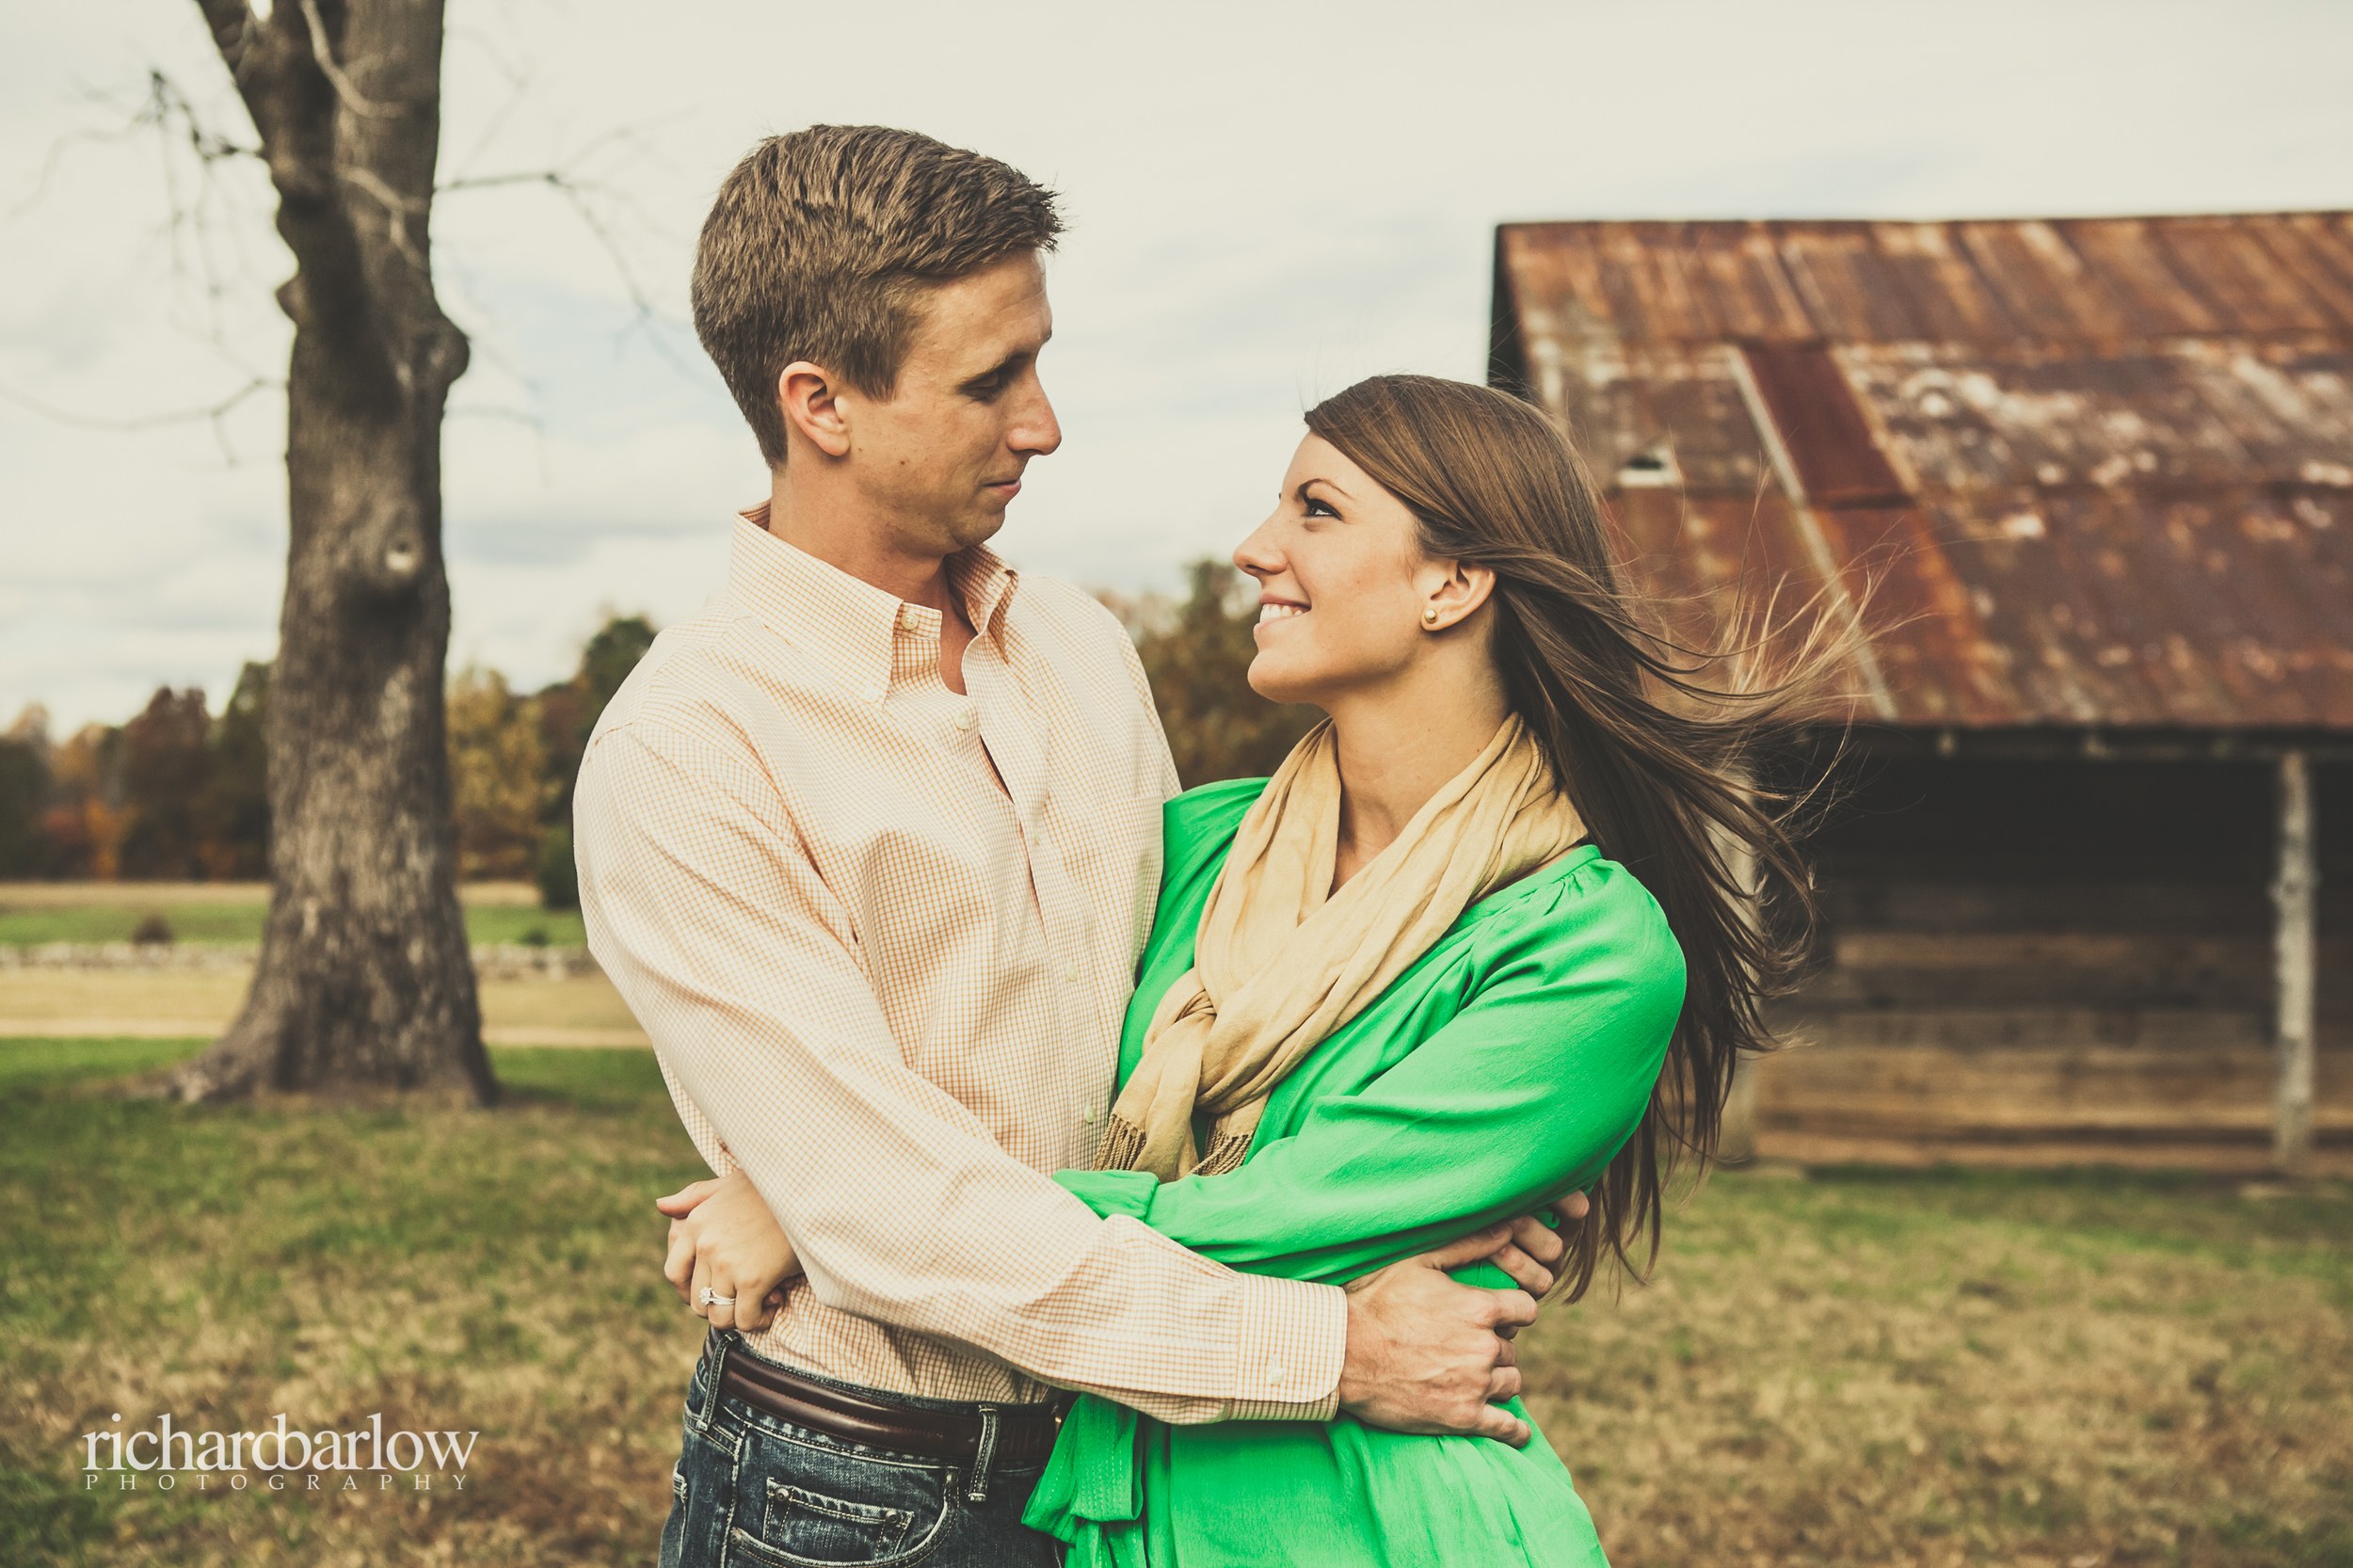 richard barlow photography - Graham and Lauren Engagement Session Wake Forest-12.jpg